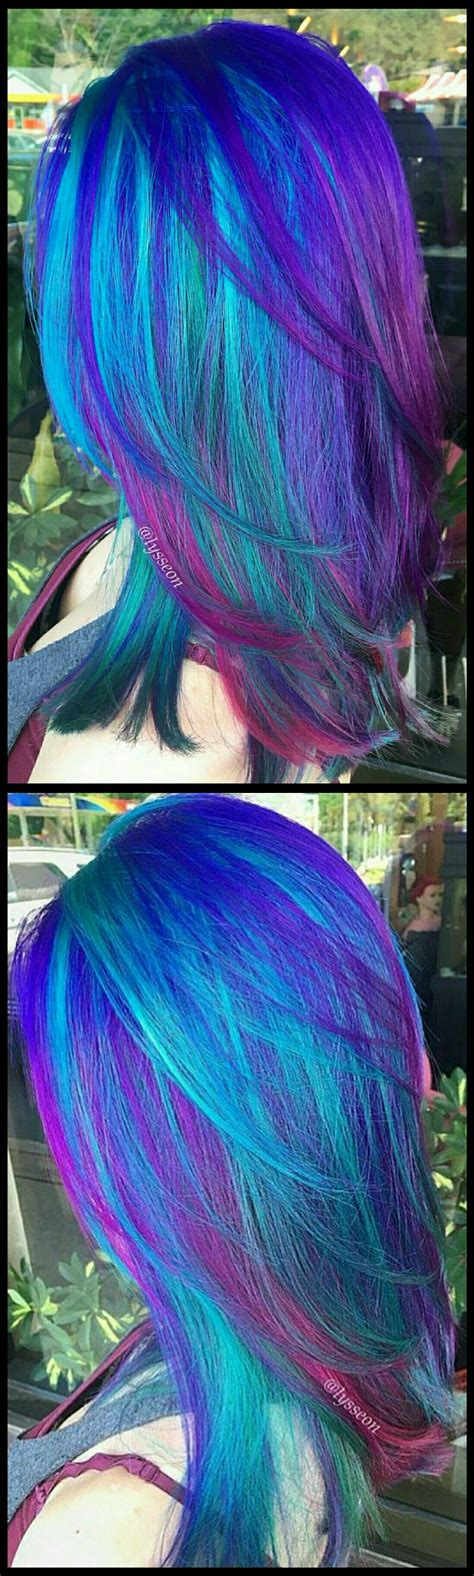 hairstyles dyed electric blue purple dyed hair by lysseon hair